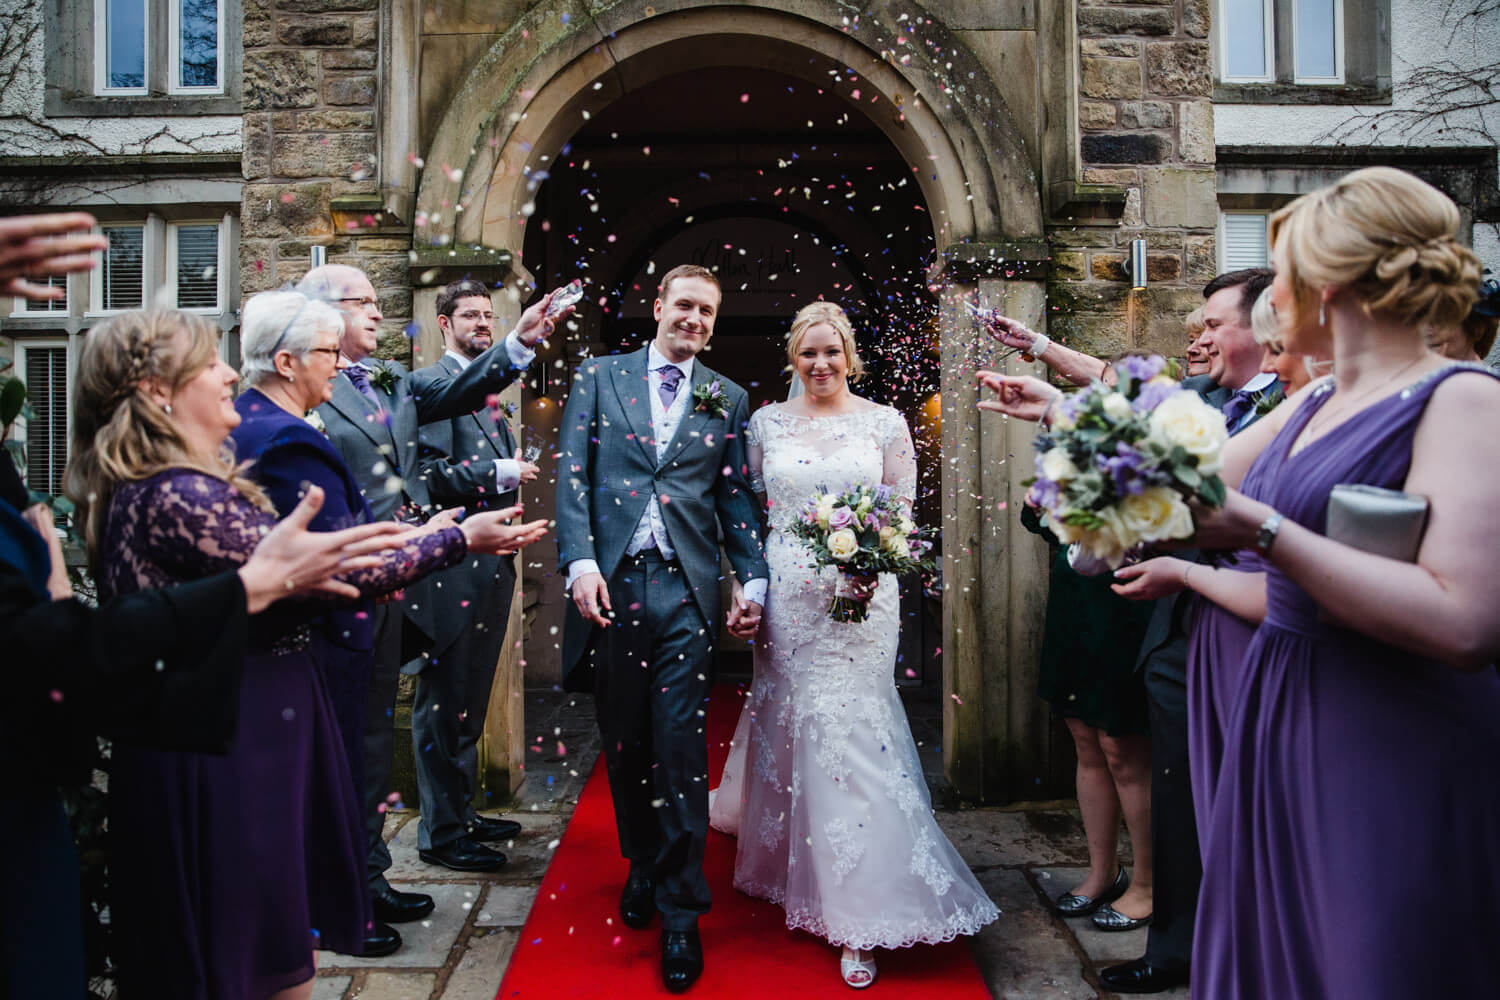 wedding party throwing confetti over newly wedded couple at Mitton Hall